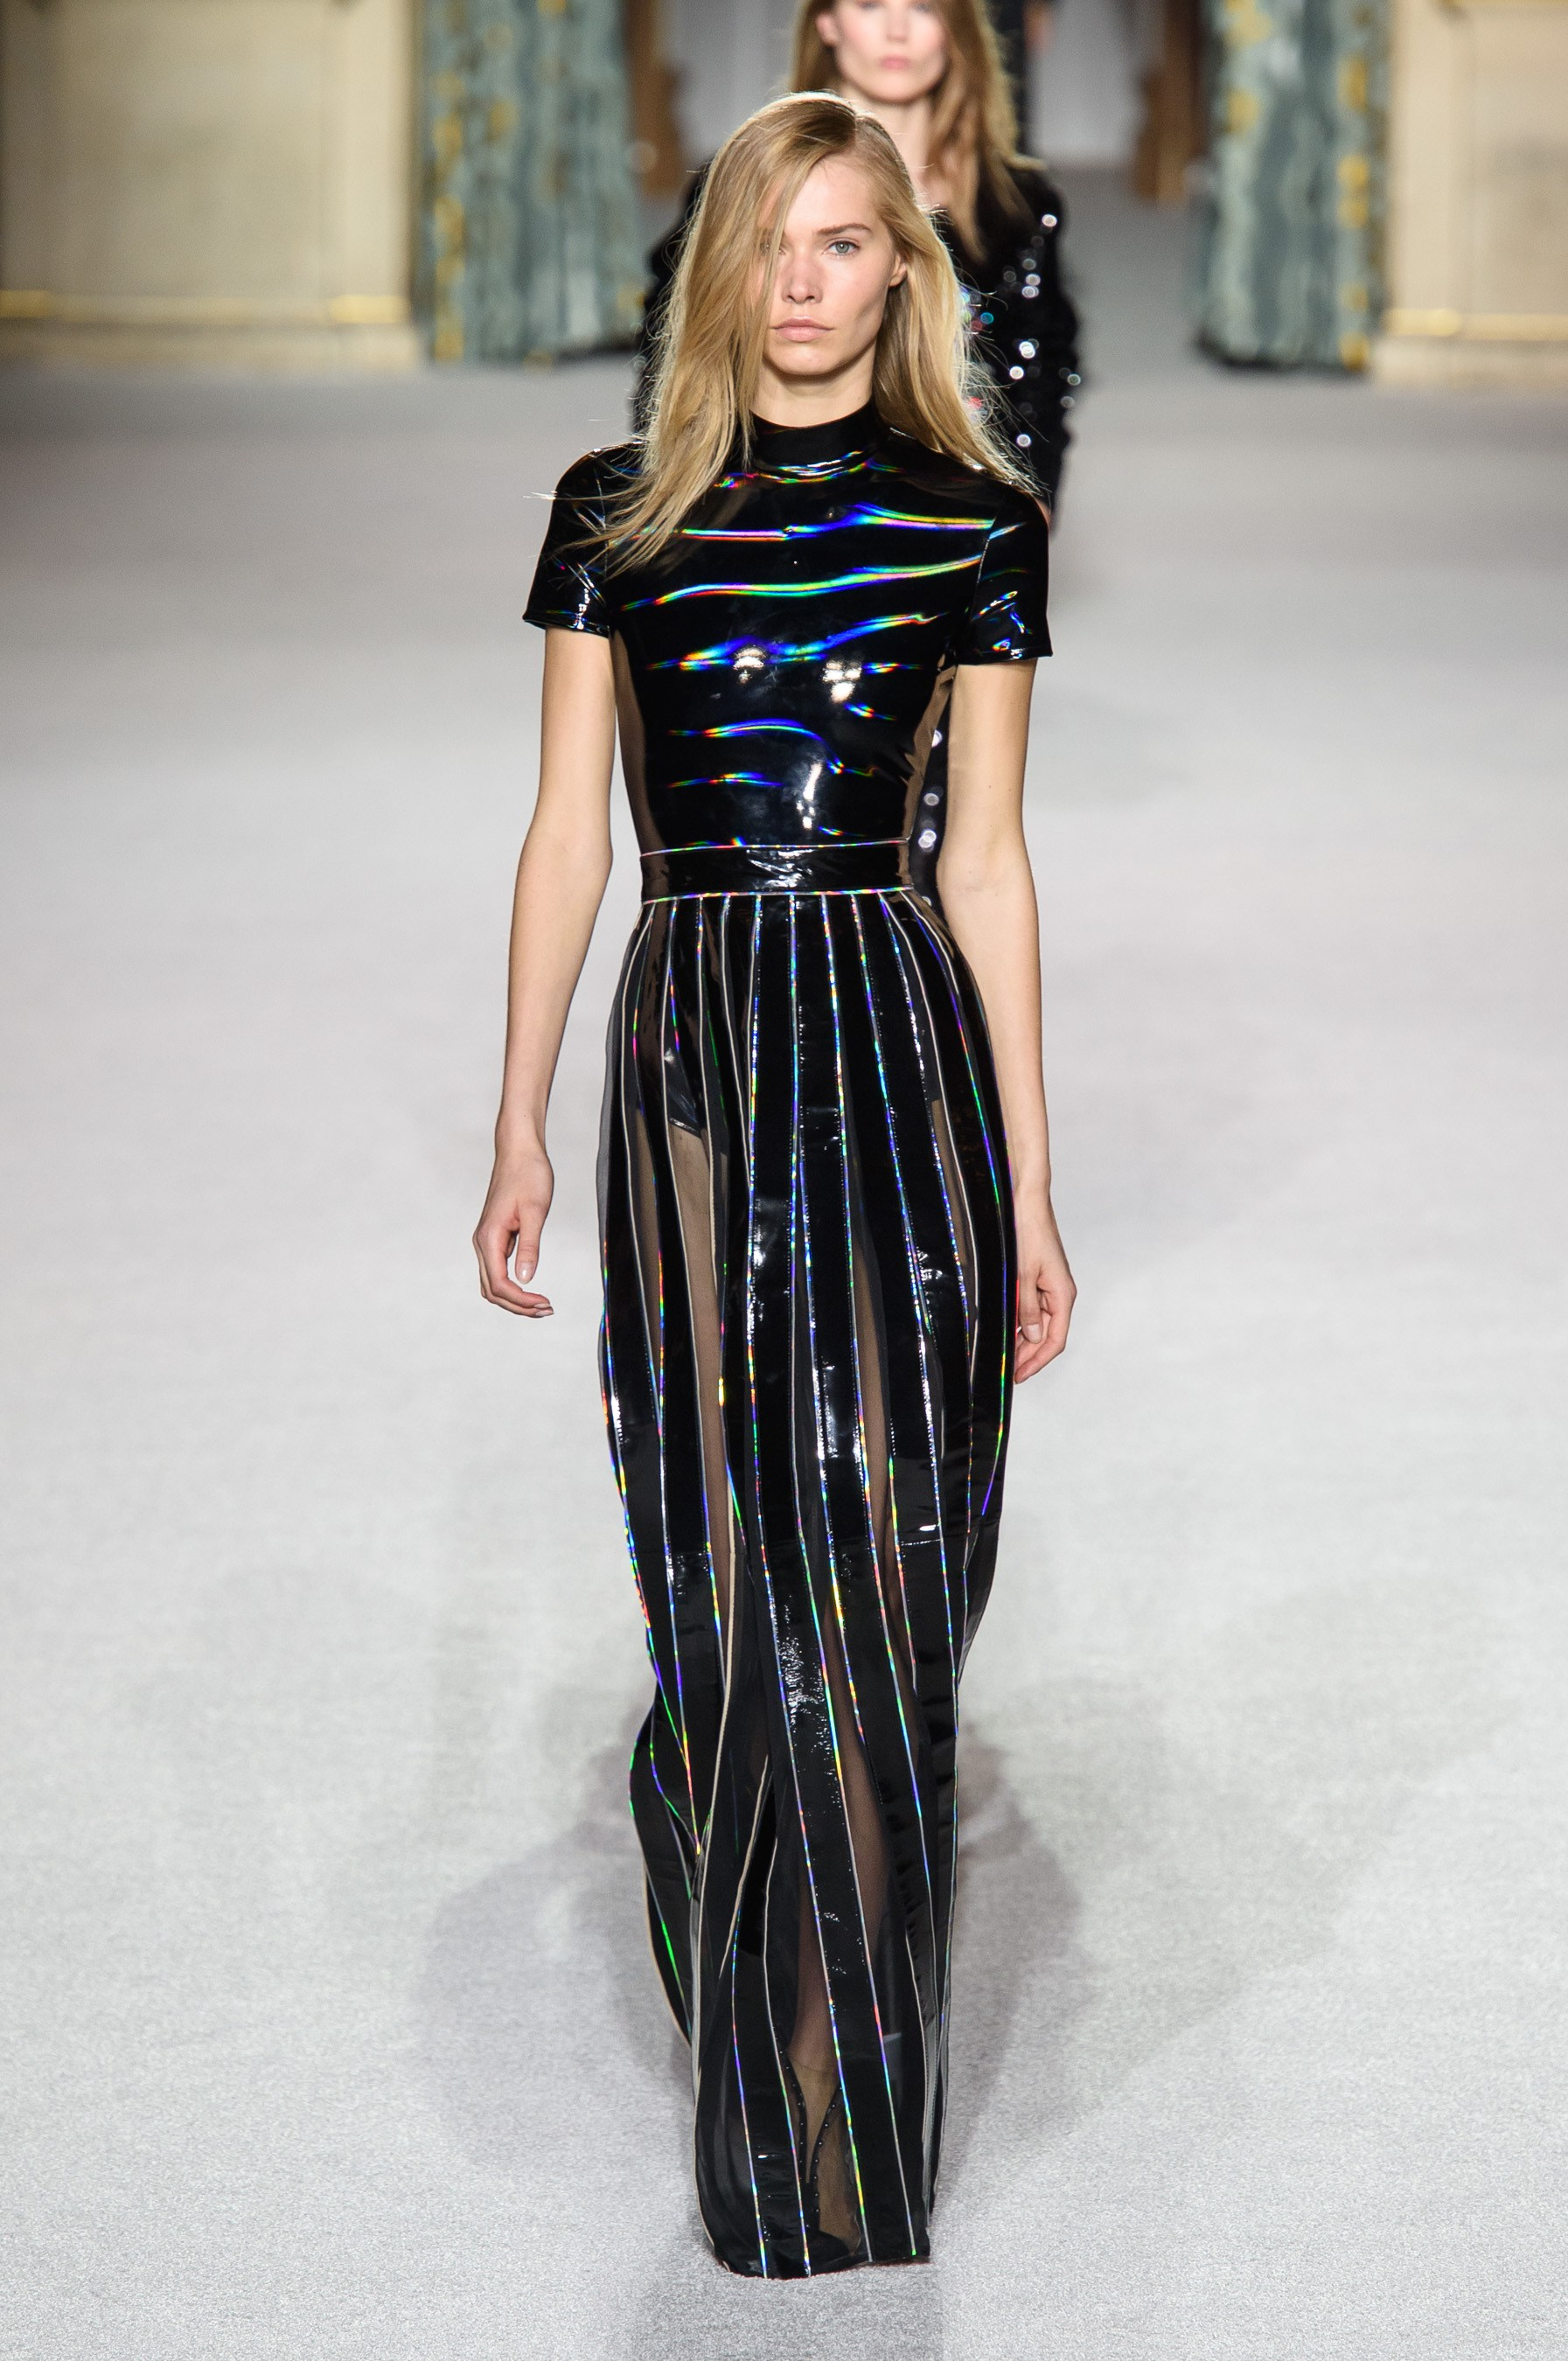 The Future is Now - Fashion Trend Fall 2018